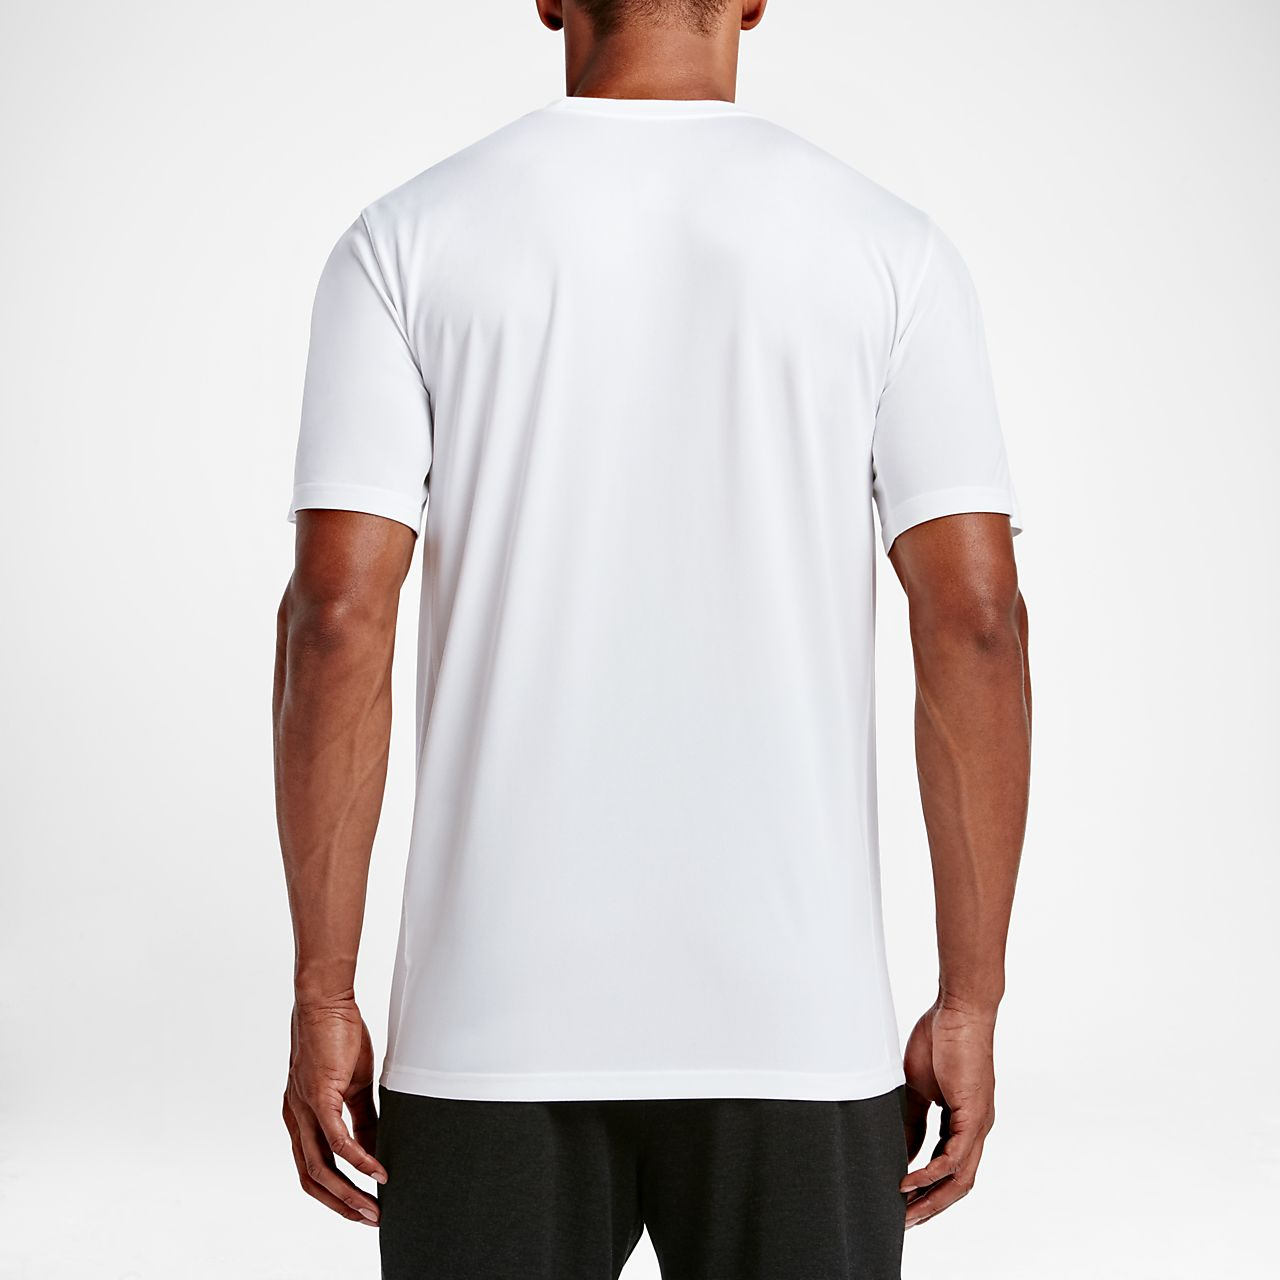 08f43177 Nike Legend 2.0 Men's Training T-Shirt. Nike.com